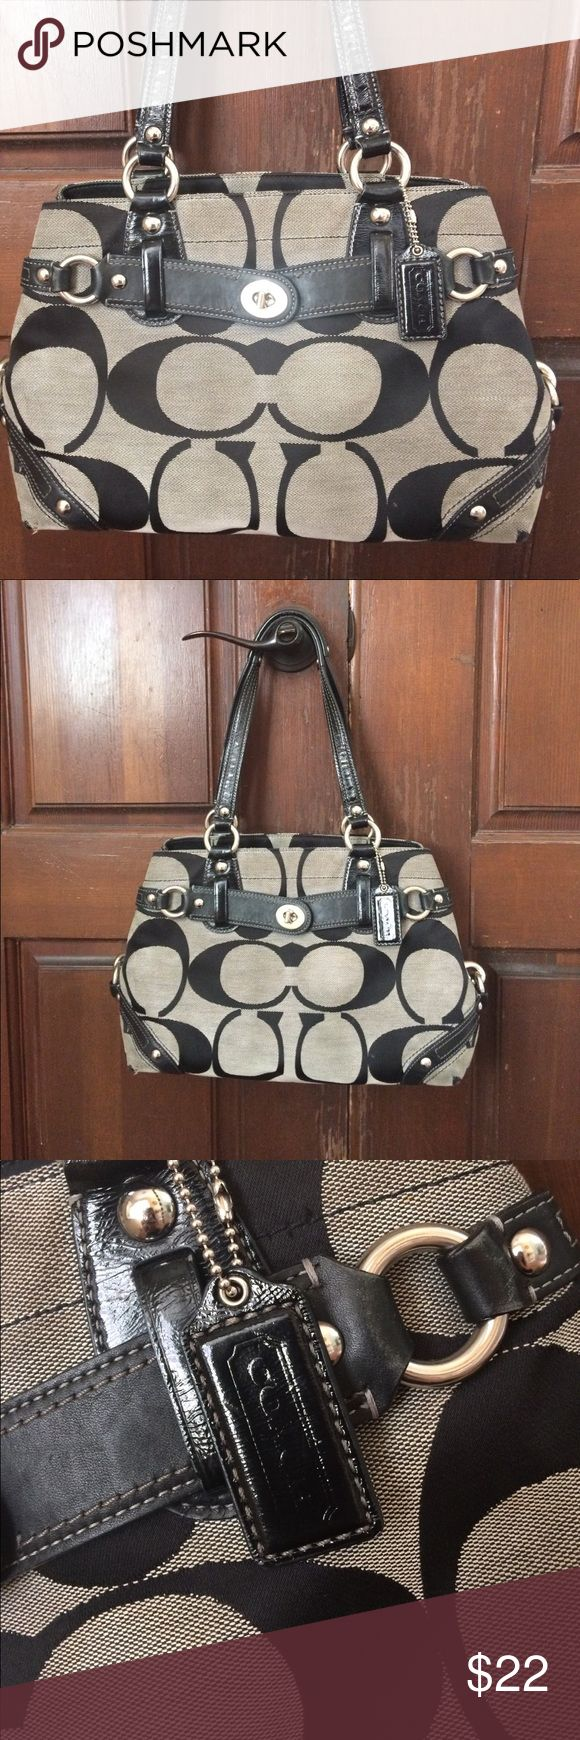 Coach Carly Carryall Black & Grey Shoulder Bag Used condition. Bag has definitely been well loved but is still in good condition. Some minor tearing and wear at all four bottom corners.  Small spot front bottom right of the bag. Leather is slightly worn where it connects at the hardware. (See pictures.) Inside is in great condition. This bag still looks awesome and has a lot of life to go. :) Coach Bags Satchels